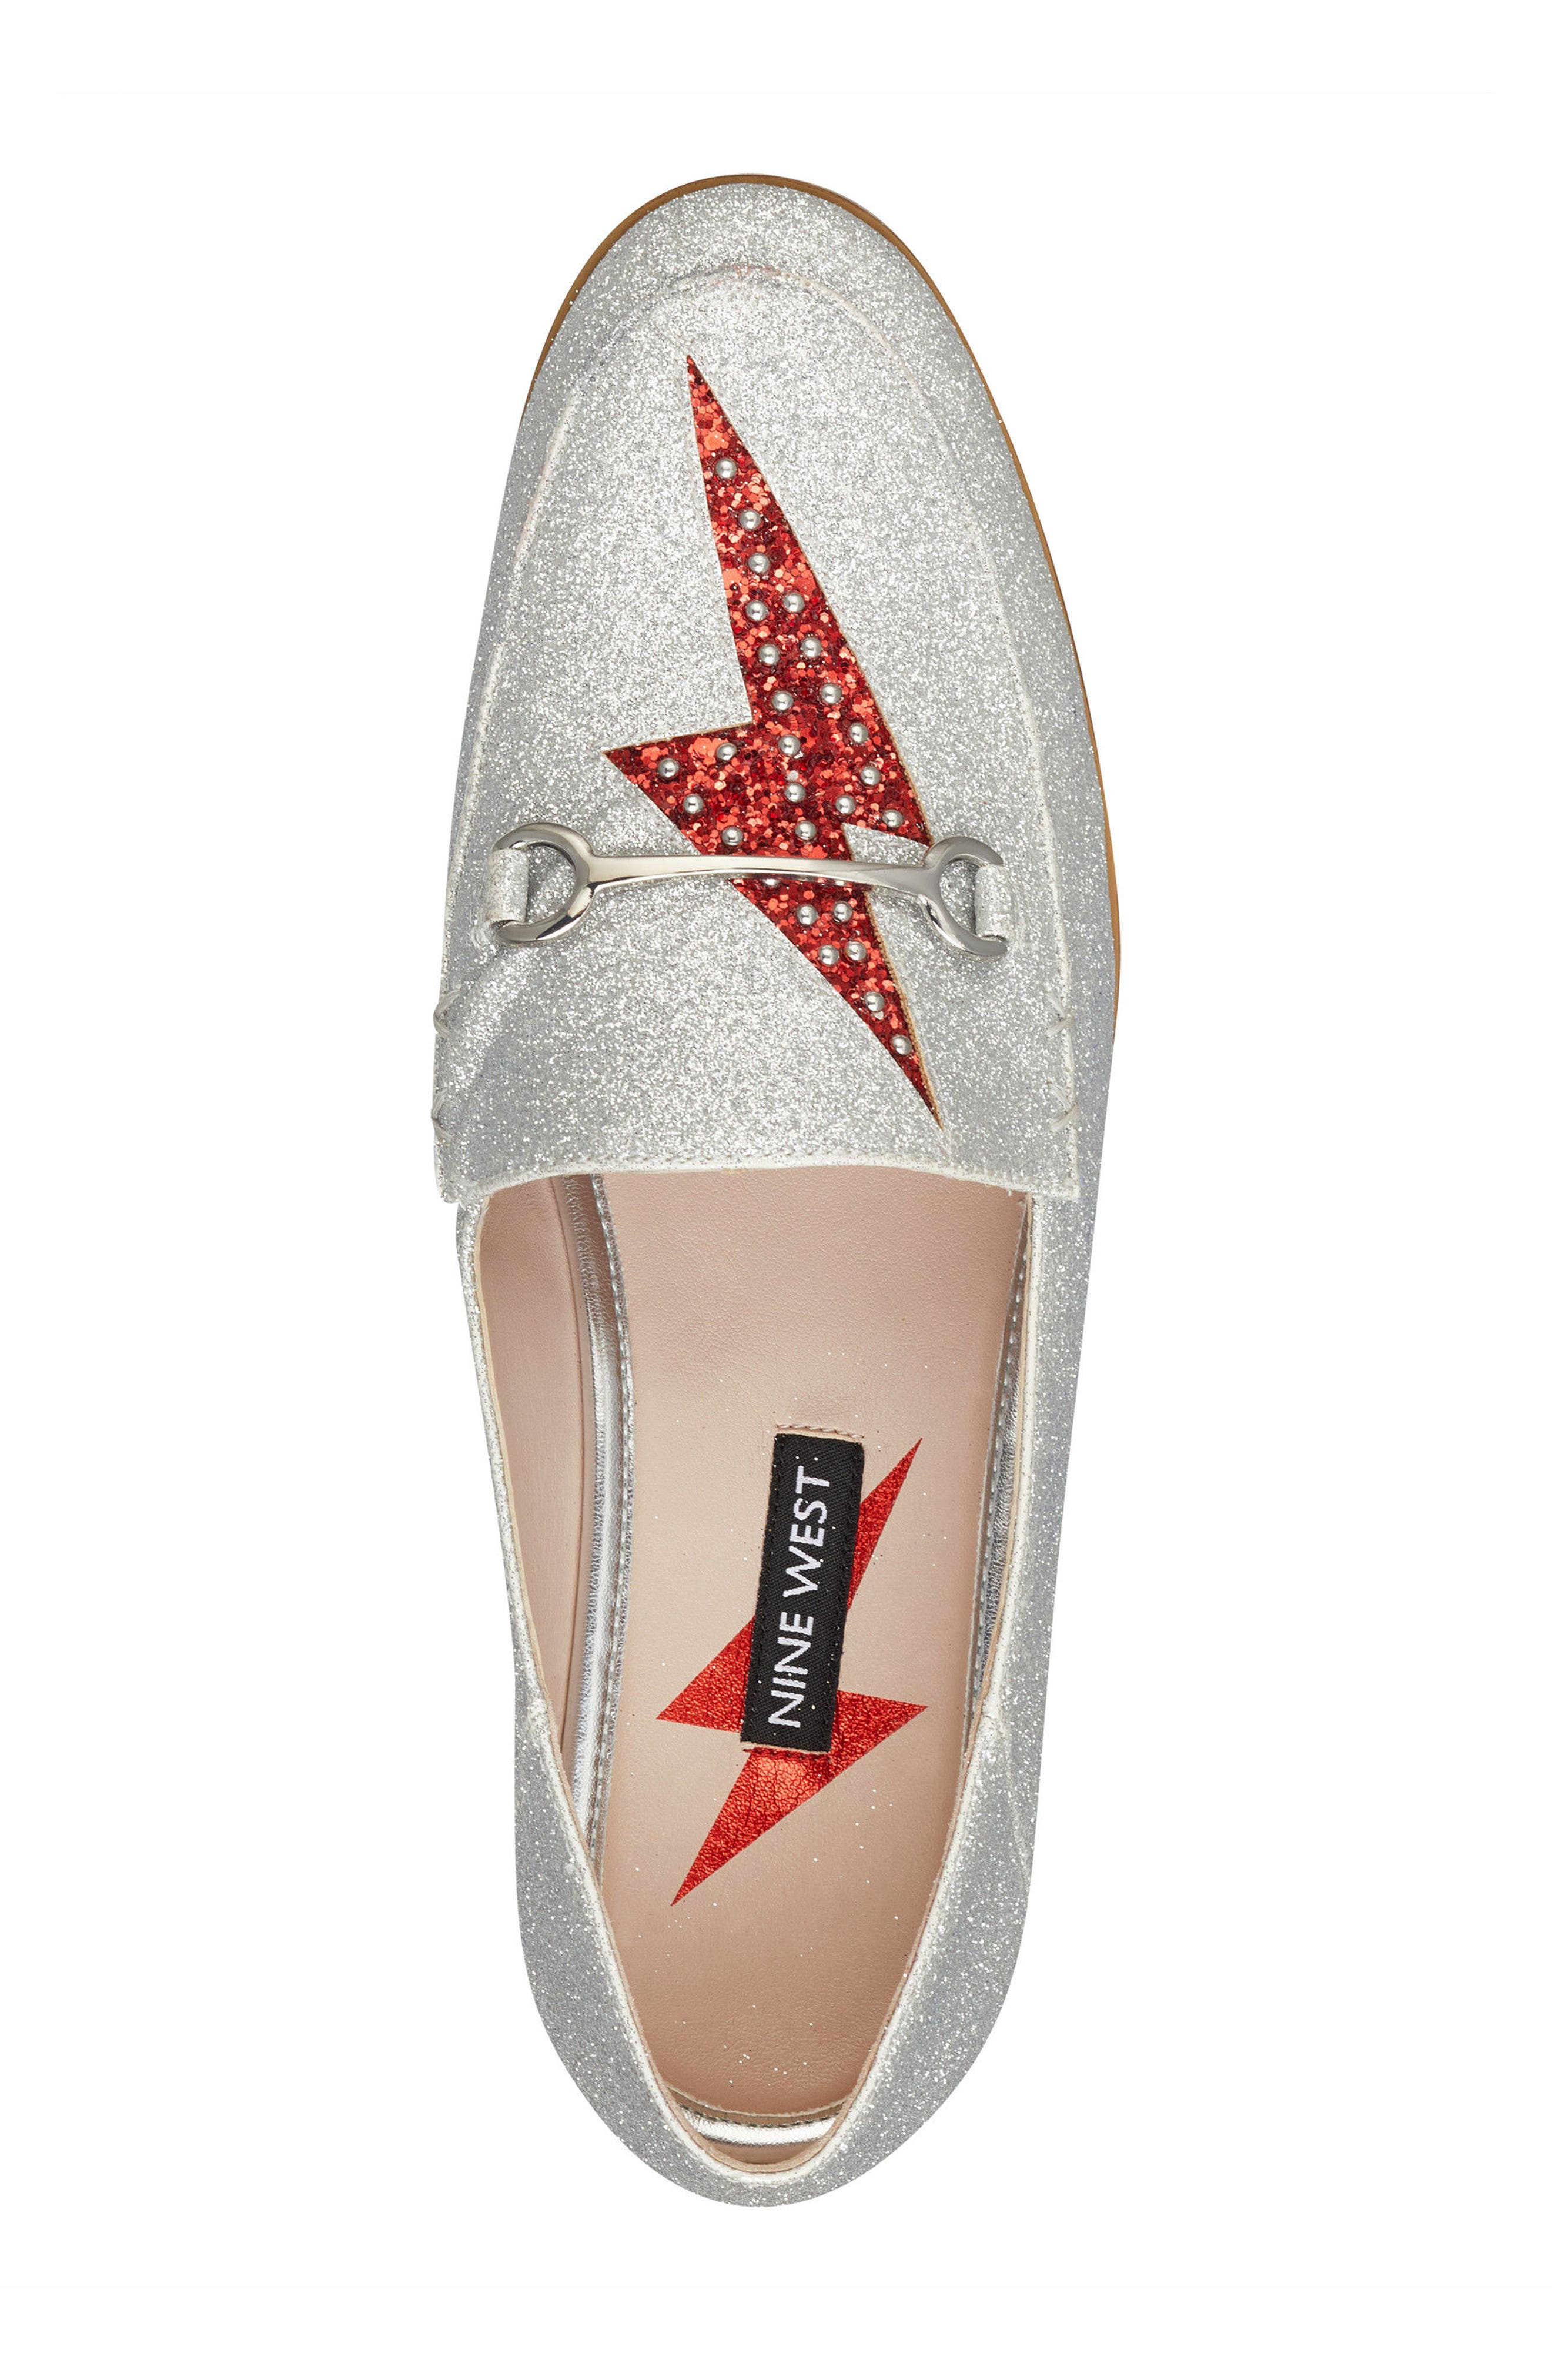 Wildgirls Embellished Loafer,                             Alternate thumbnail 5, color,                             SILVER/ RED FABRIC